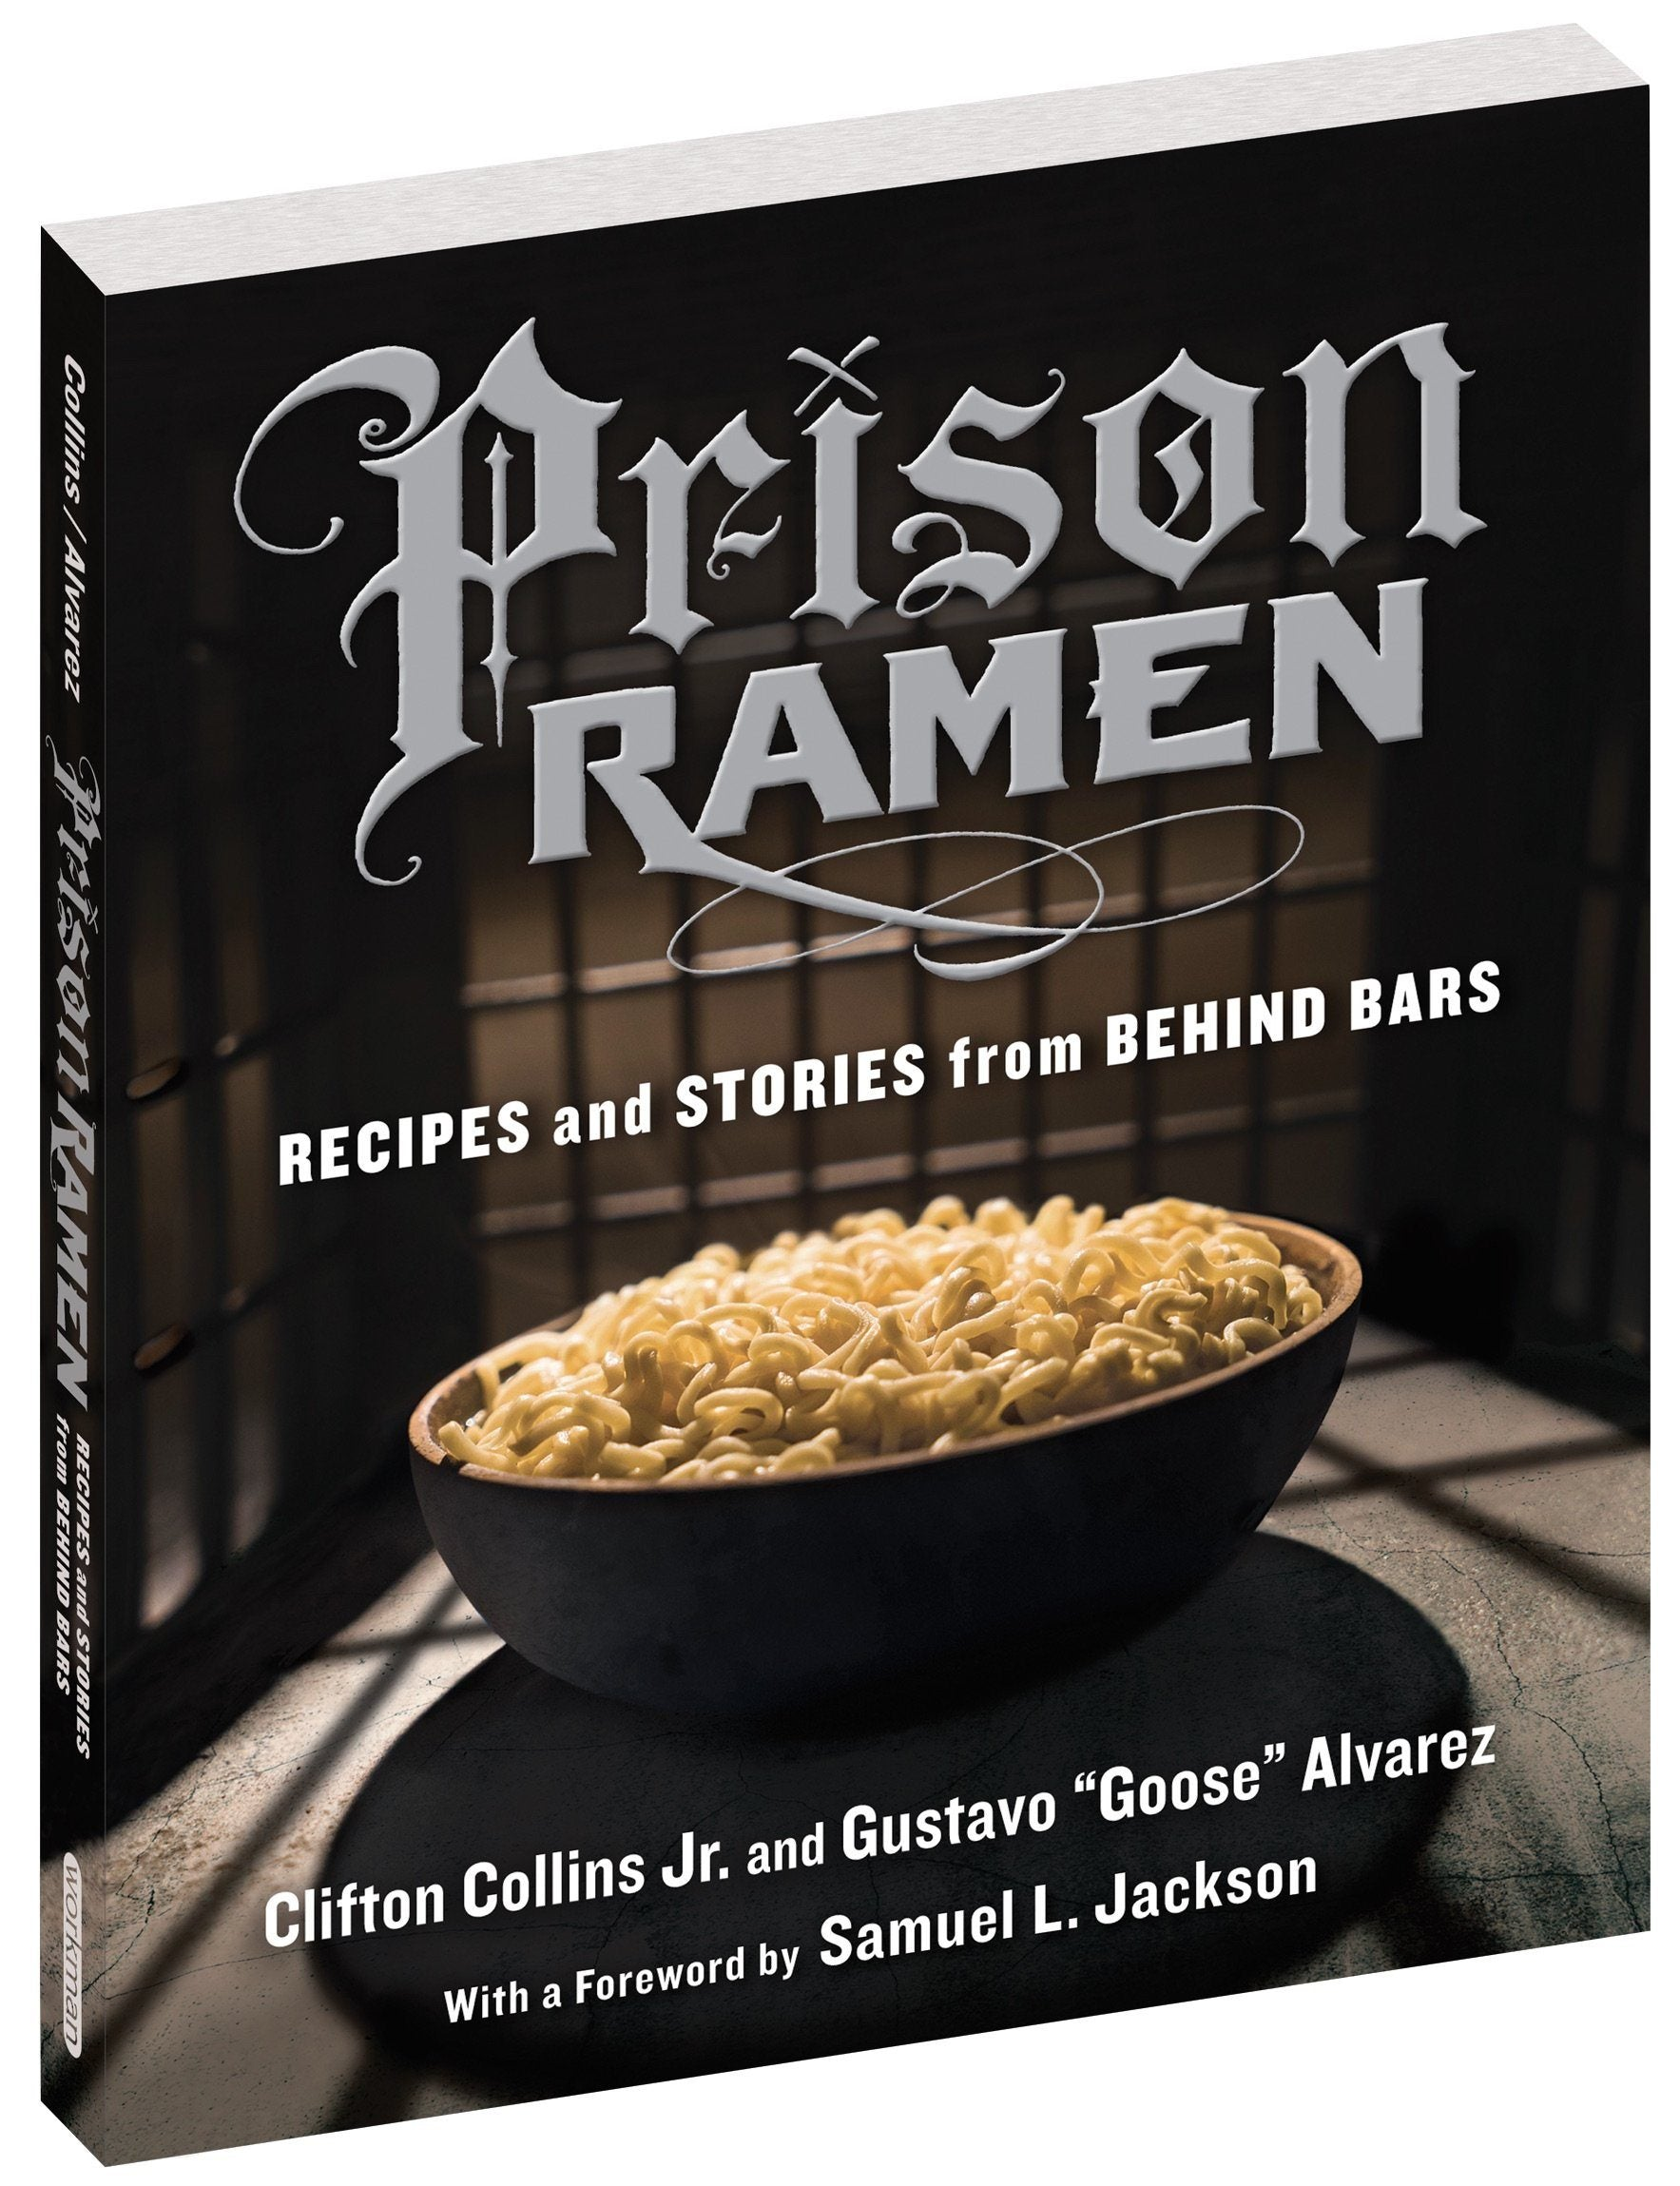 Prison Ramen Cookbook - Recipes and Stories From Behind Bars